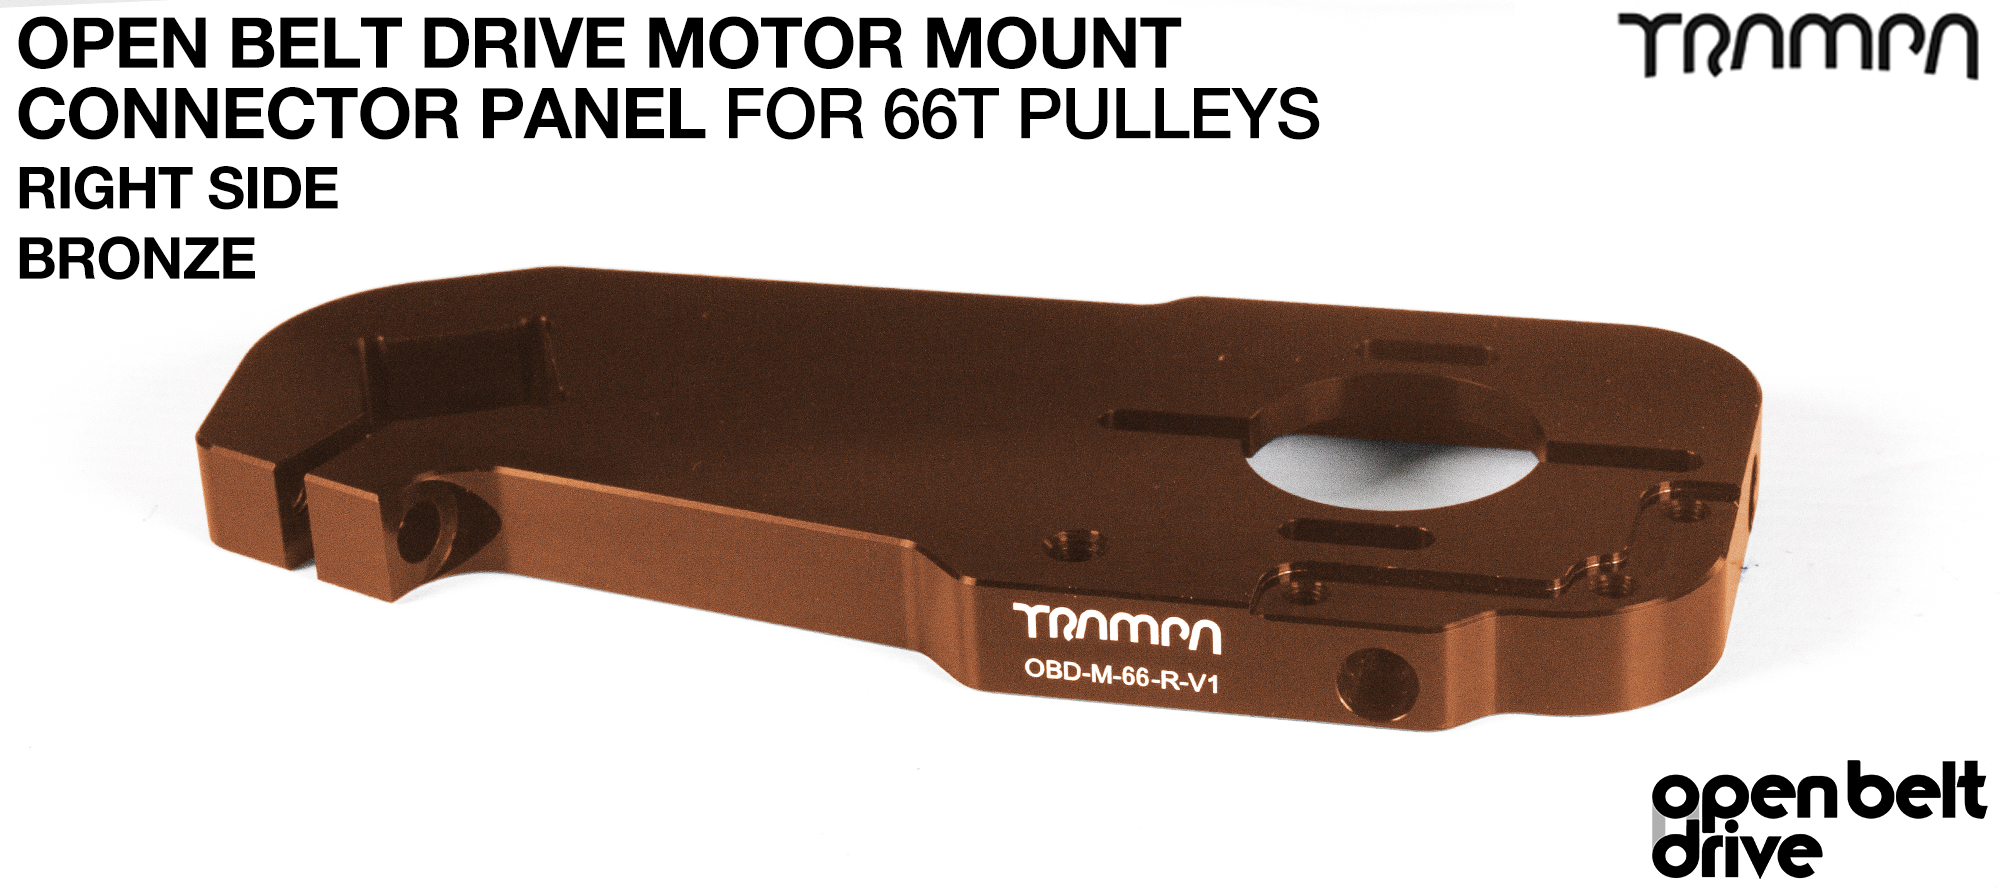 OBD Open Belt Drive Motor Mount Connector Panel for 66 tooth Pulleys - GOOFY - BRONZE